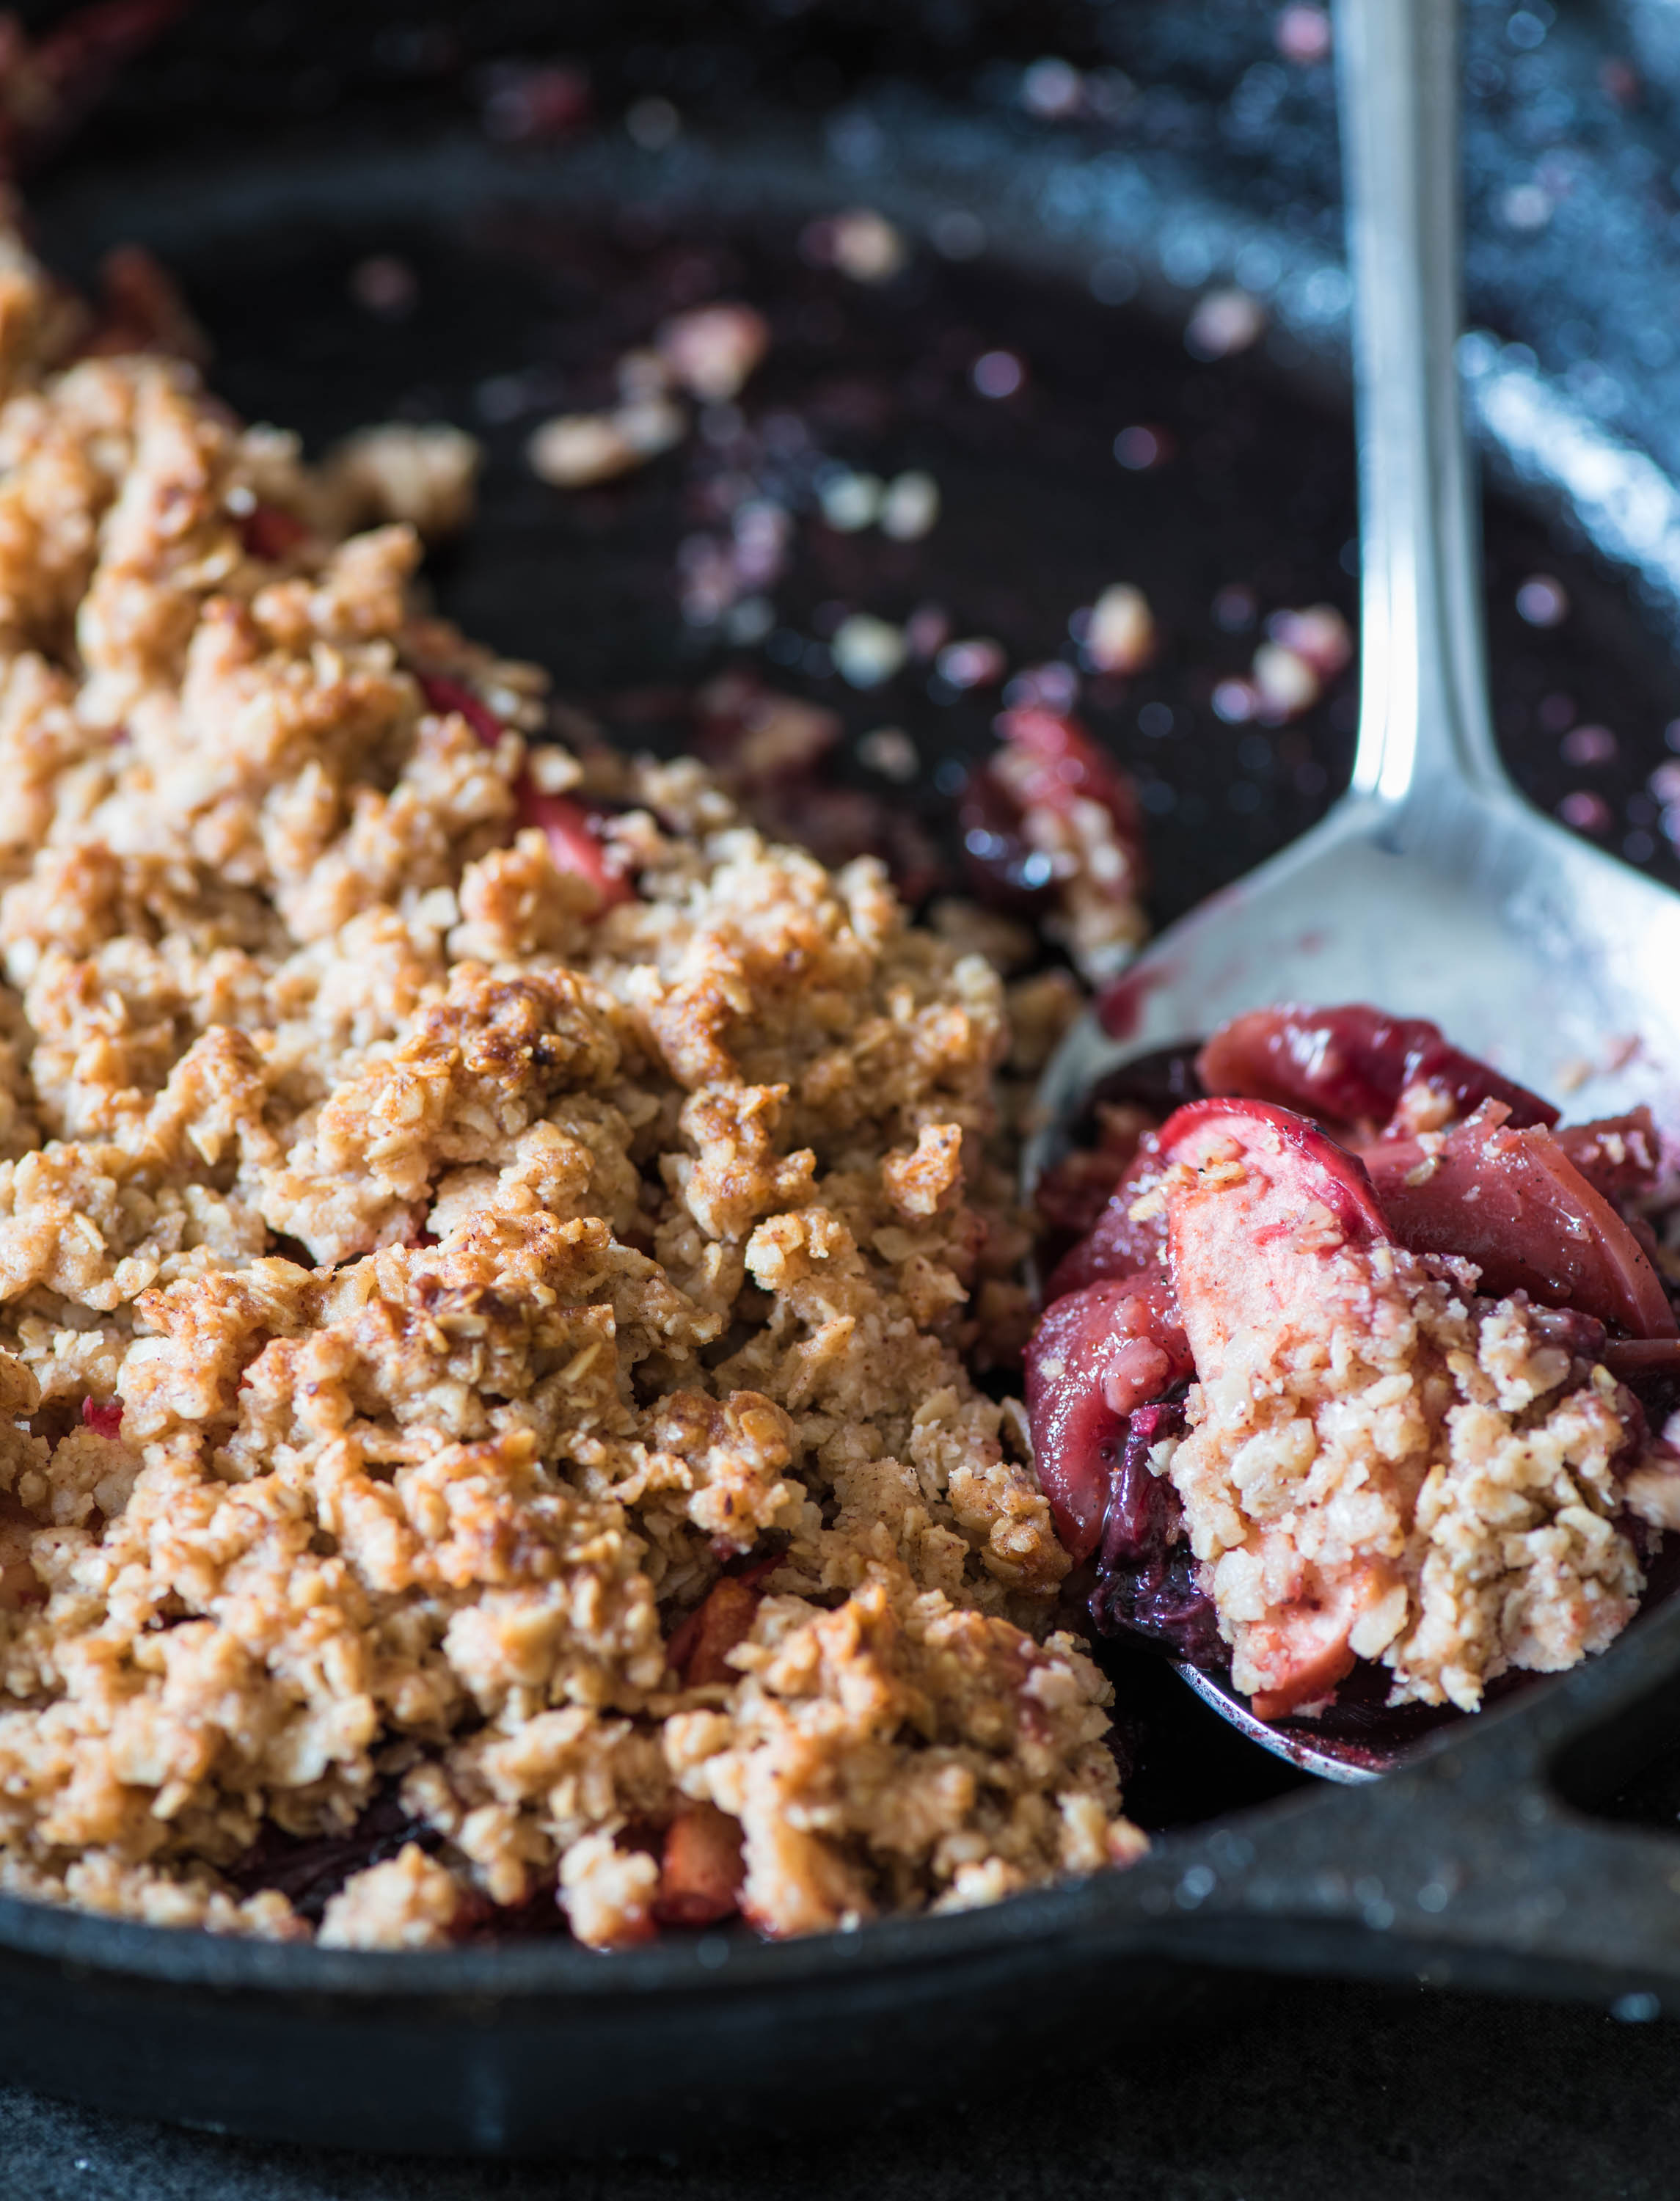 Skillet Apple and Cherry Maple Crumble